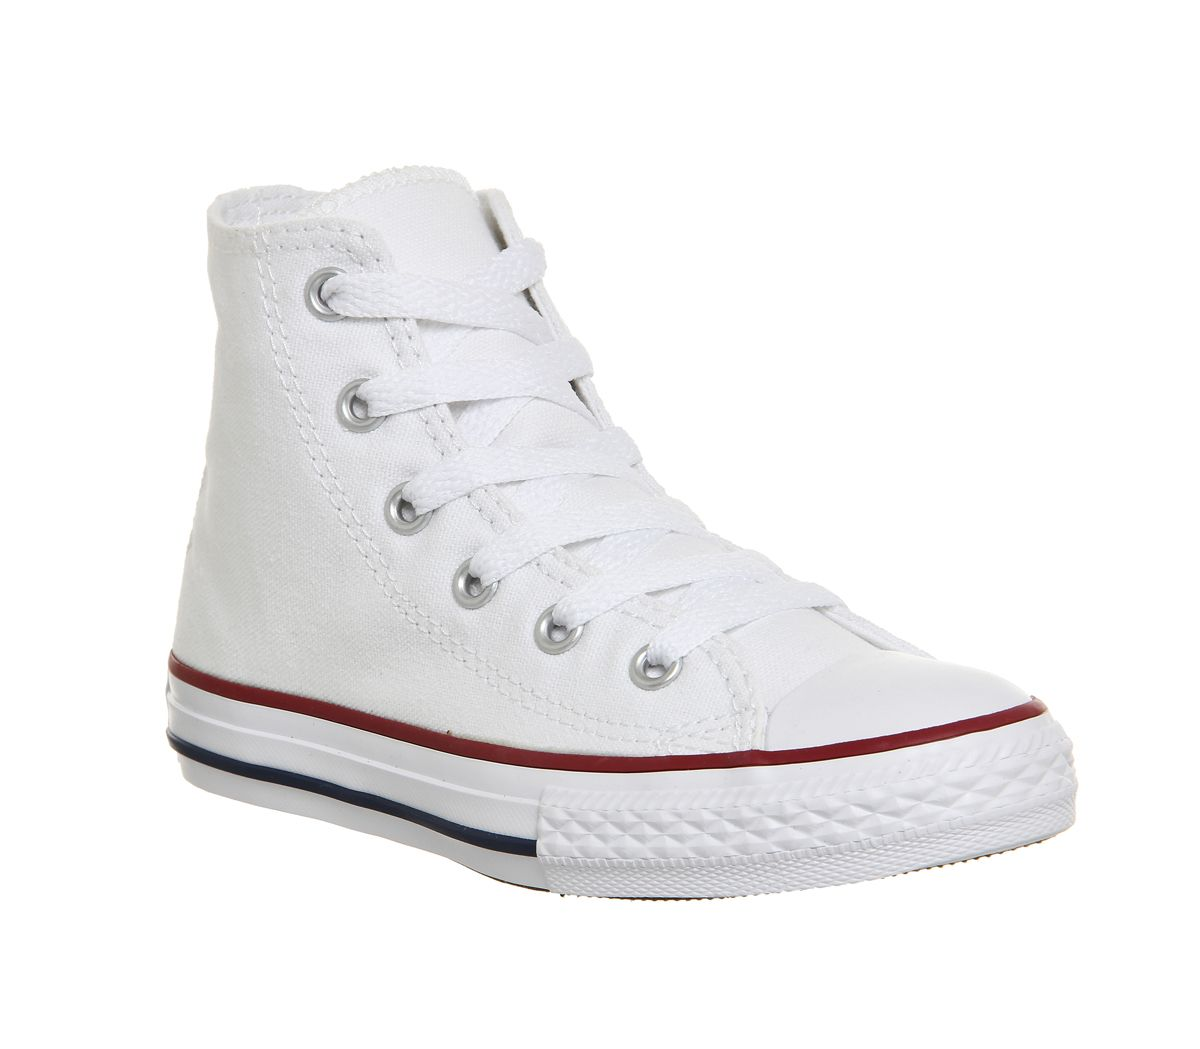 new style 0ff98 5fb95 Converse All Star Hi Mid Sizes Optical White - Unisex